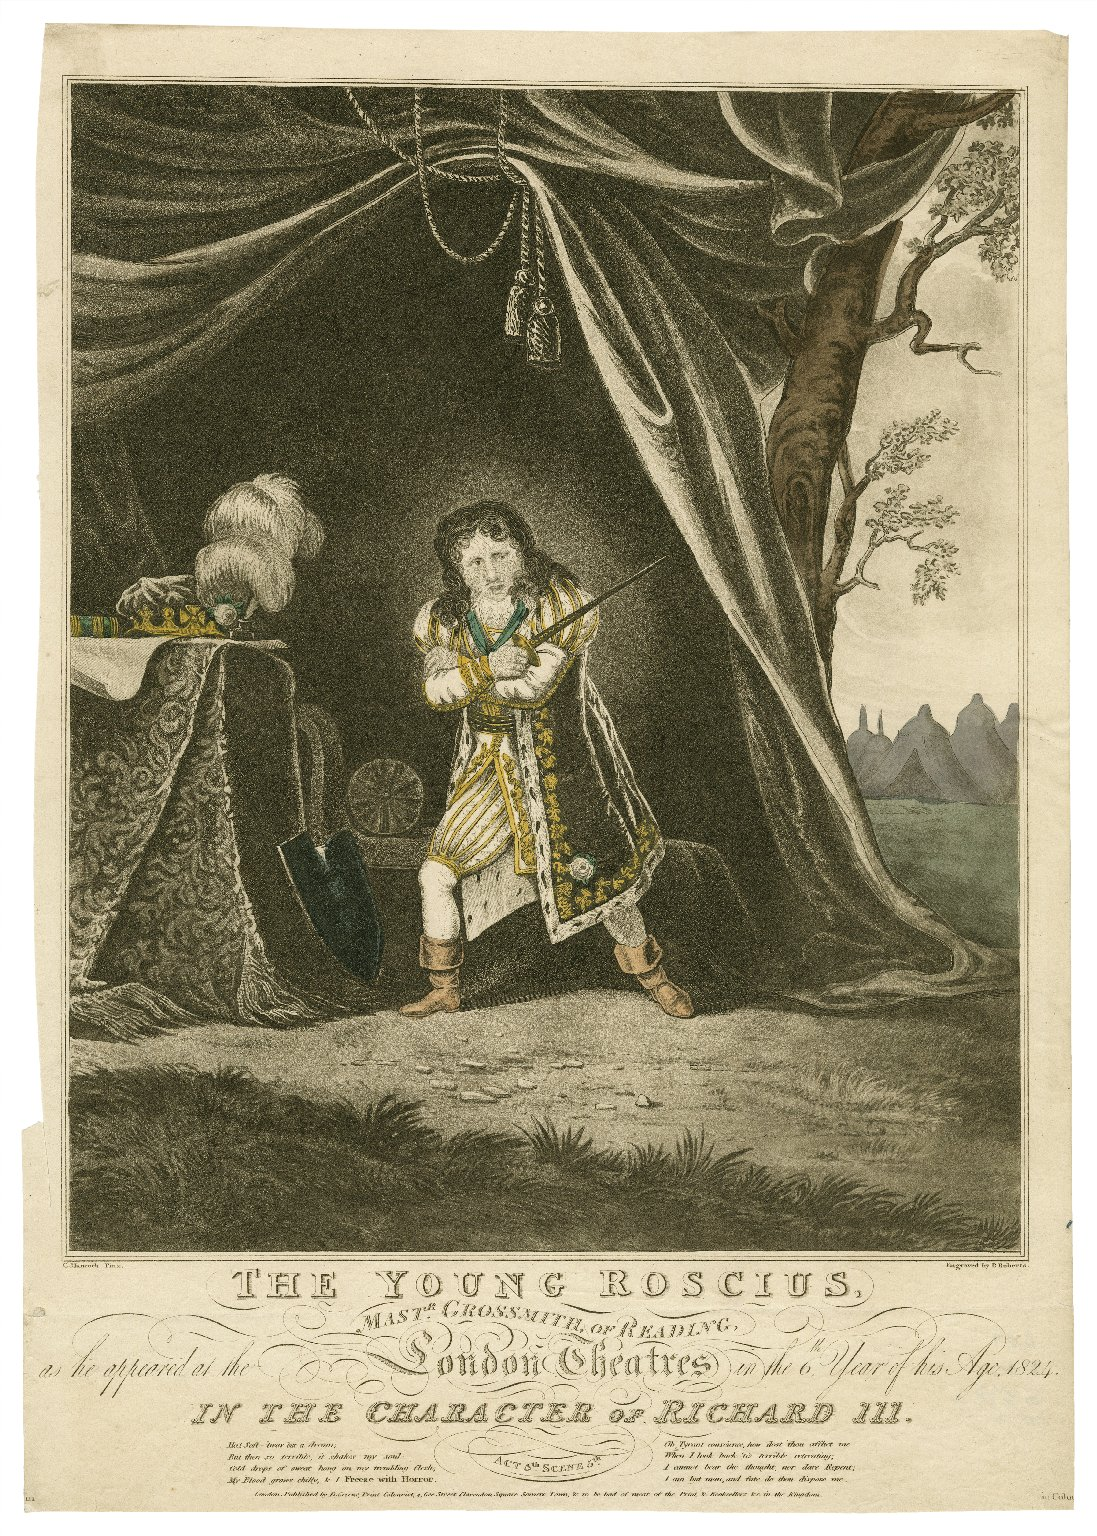 The young Roscius Mastr. Grossmith of Reading as he appeared ... in the 6th year of his age 1824 in the character of Richard III... [graphic] / G. Hancock pinx. ; engraved by P. Roberts.